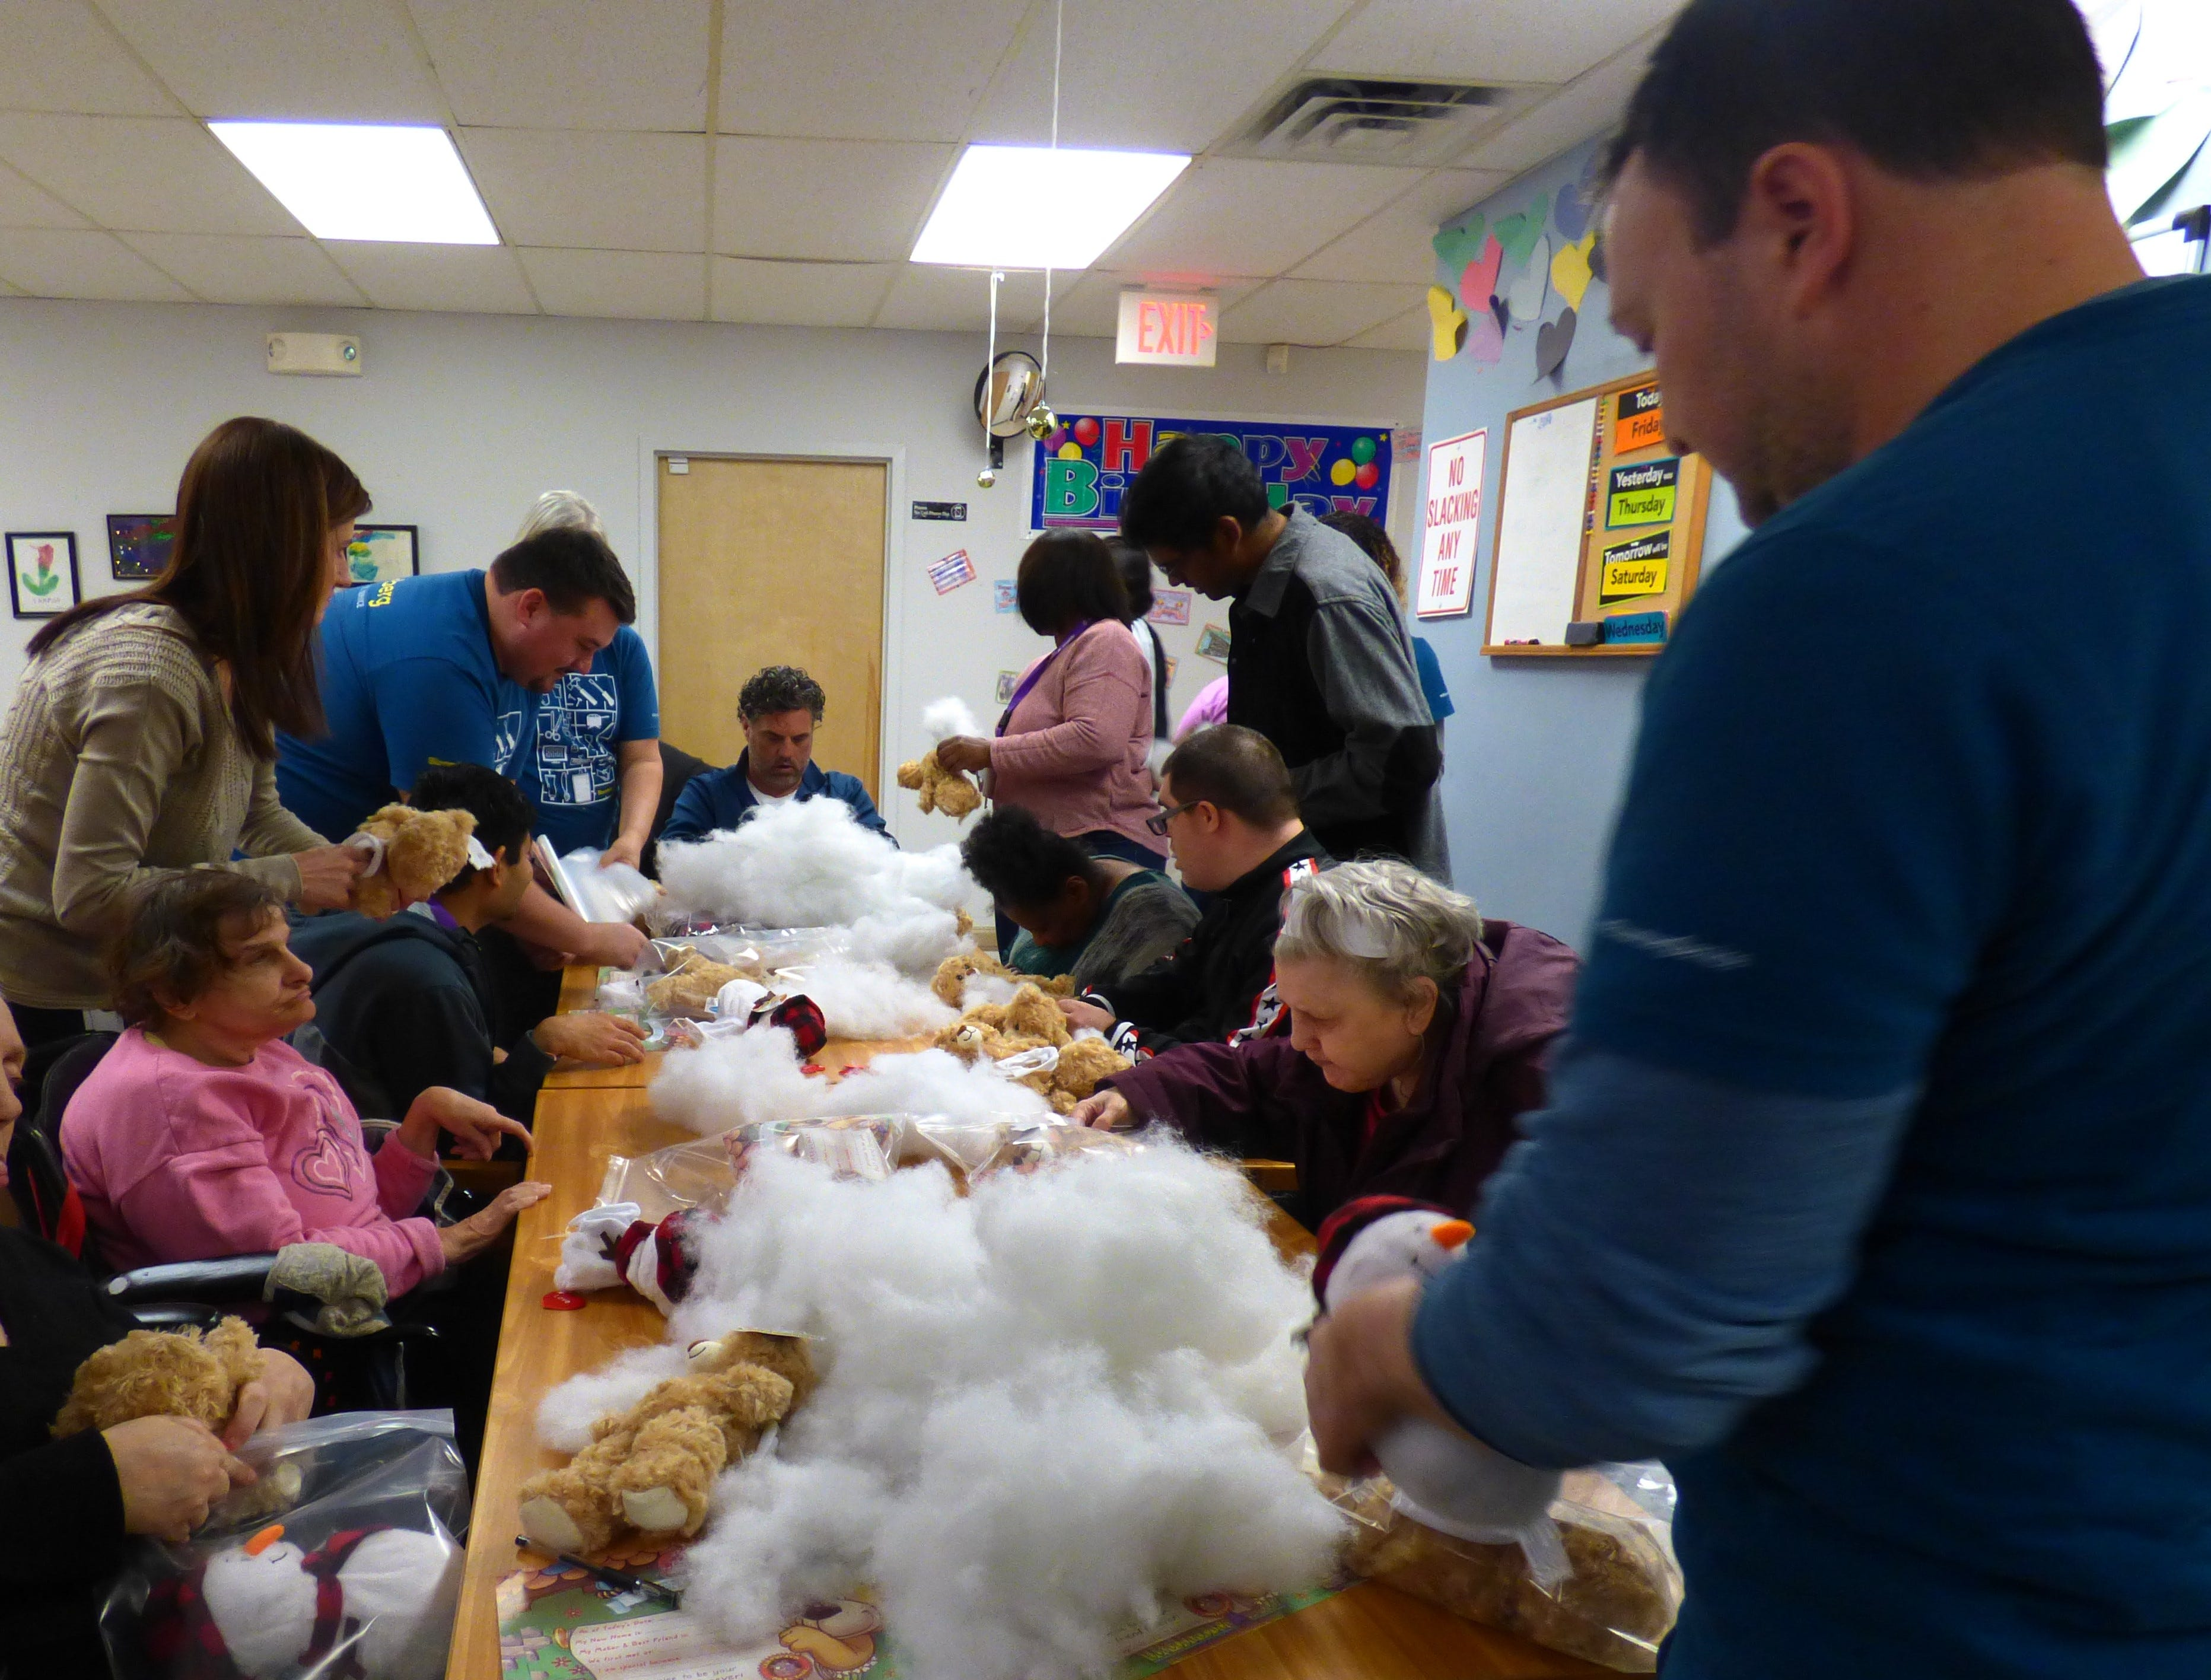 Consumers in Enable's Princeton day program and volunteers from Bloomberg are working on making Build-a-Bears. One bear for the consumer to take home and one to donate to The Children's Home Society.